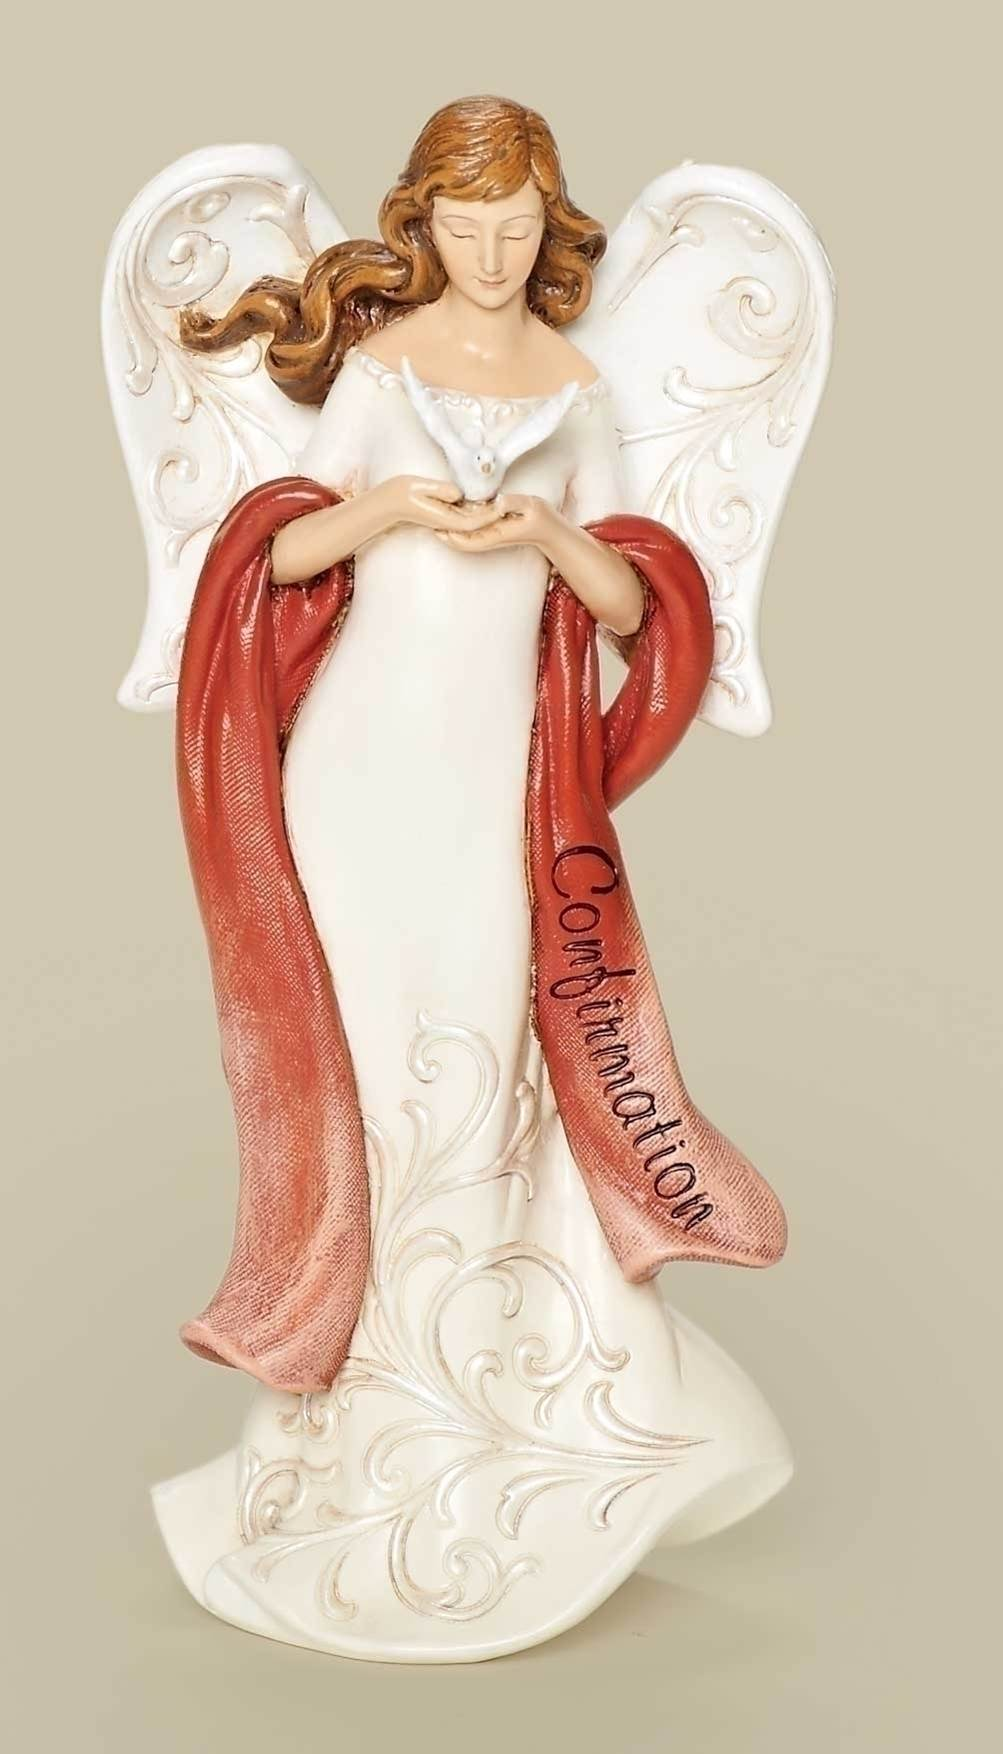 Confirmation Angel Figure